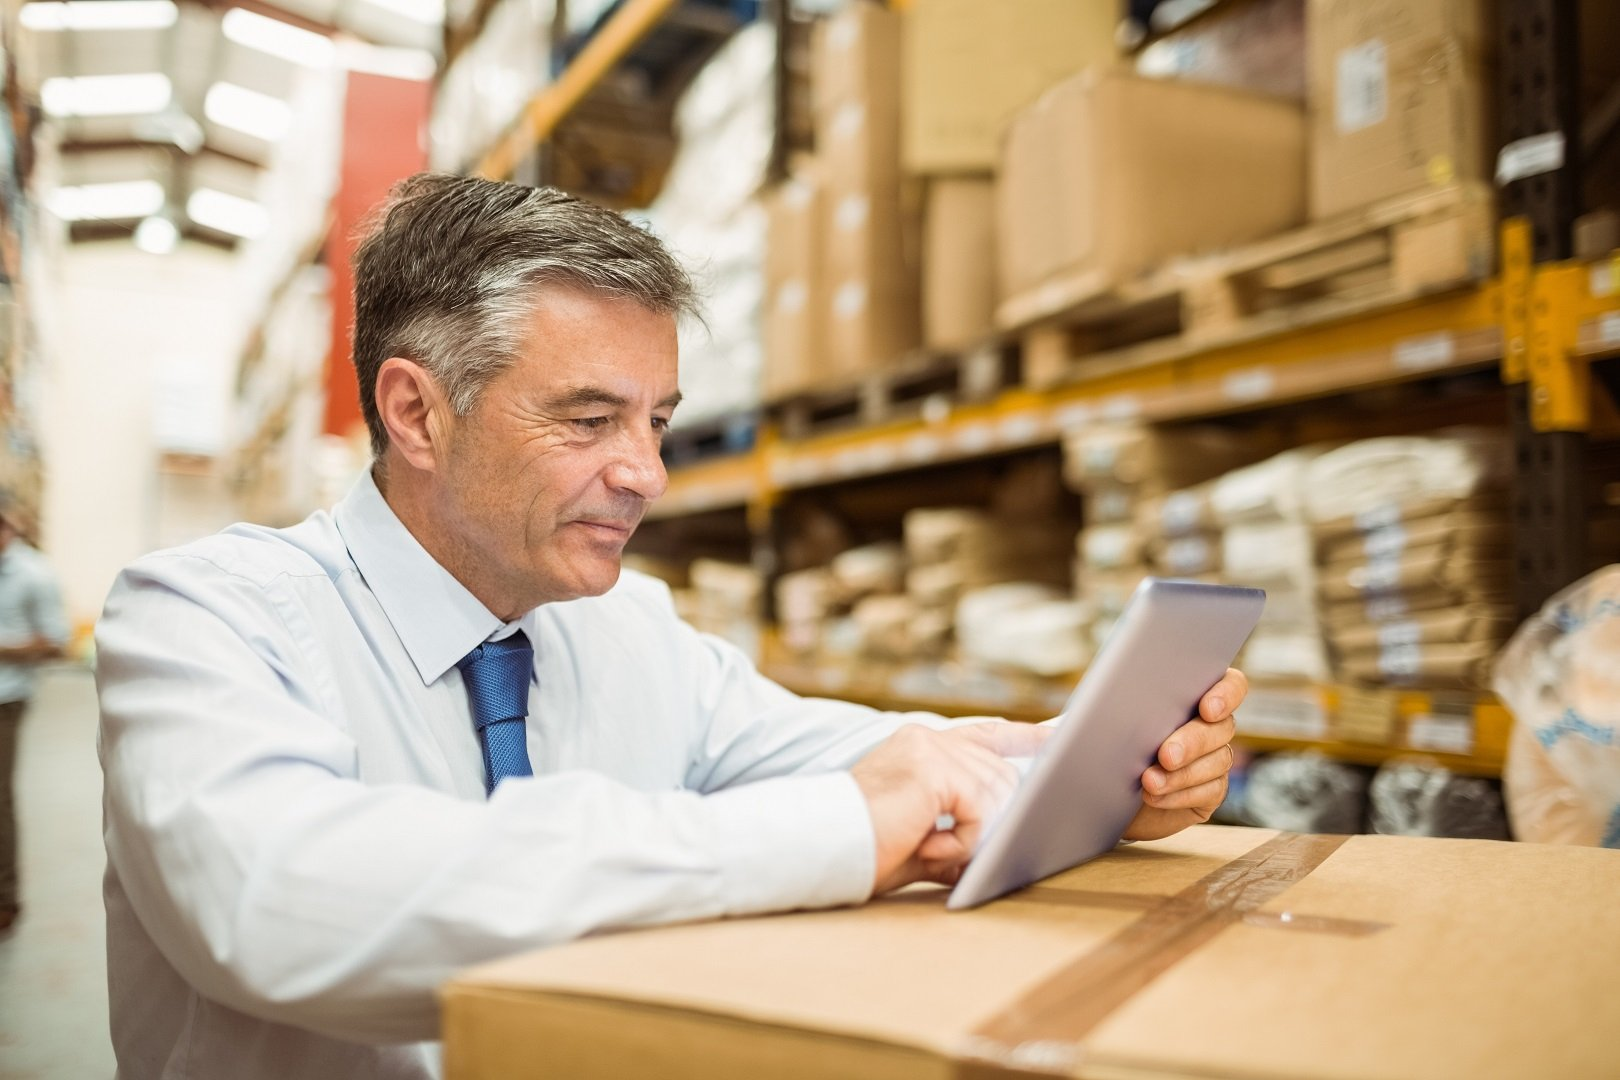 what is industrial property management warehouse manager working on tablet pc